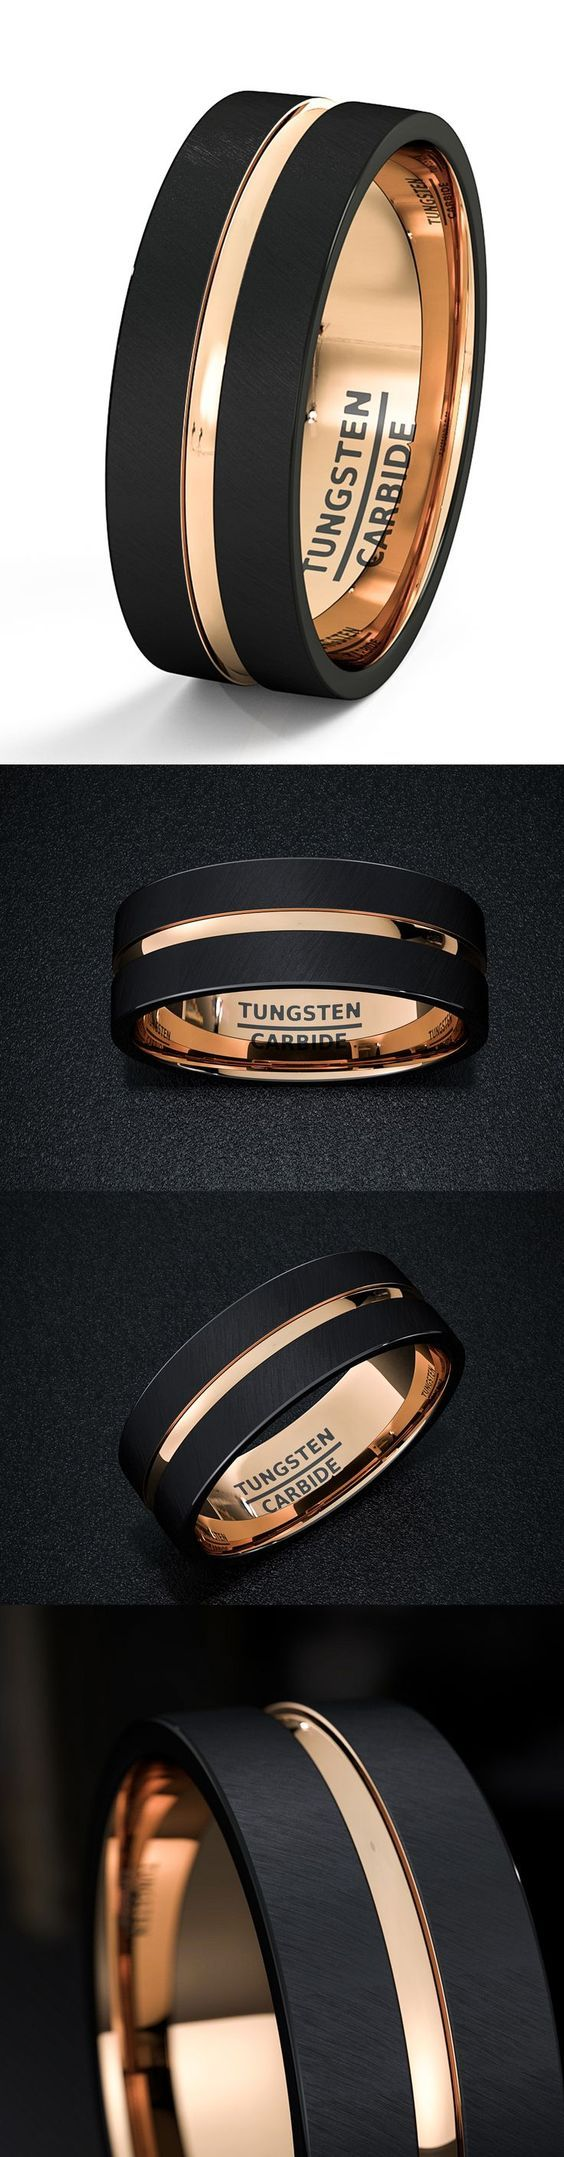 Mens Wedding Band Black Tungsten Ring 8mm Rose Gold Inside Matted Brushed Surfac…